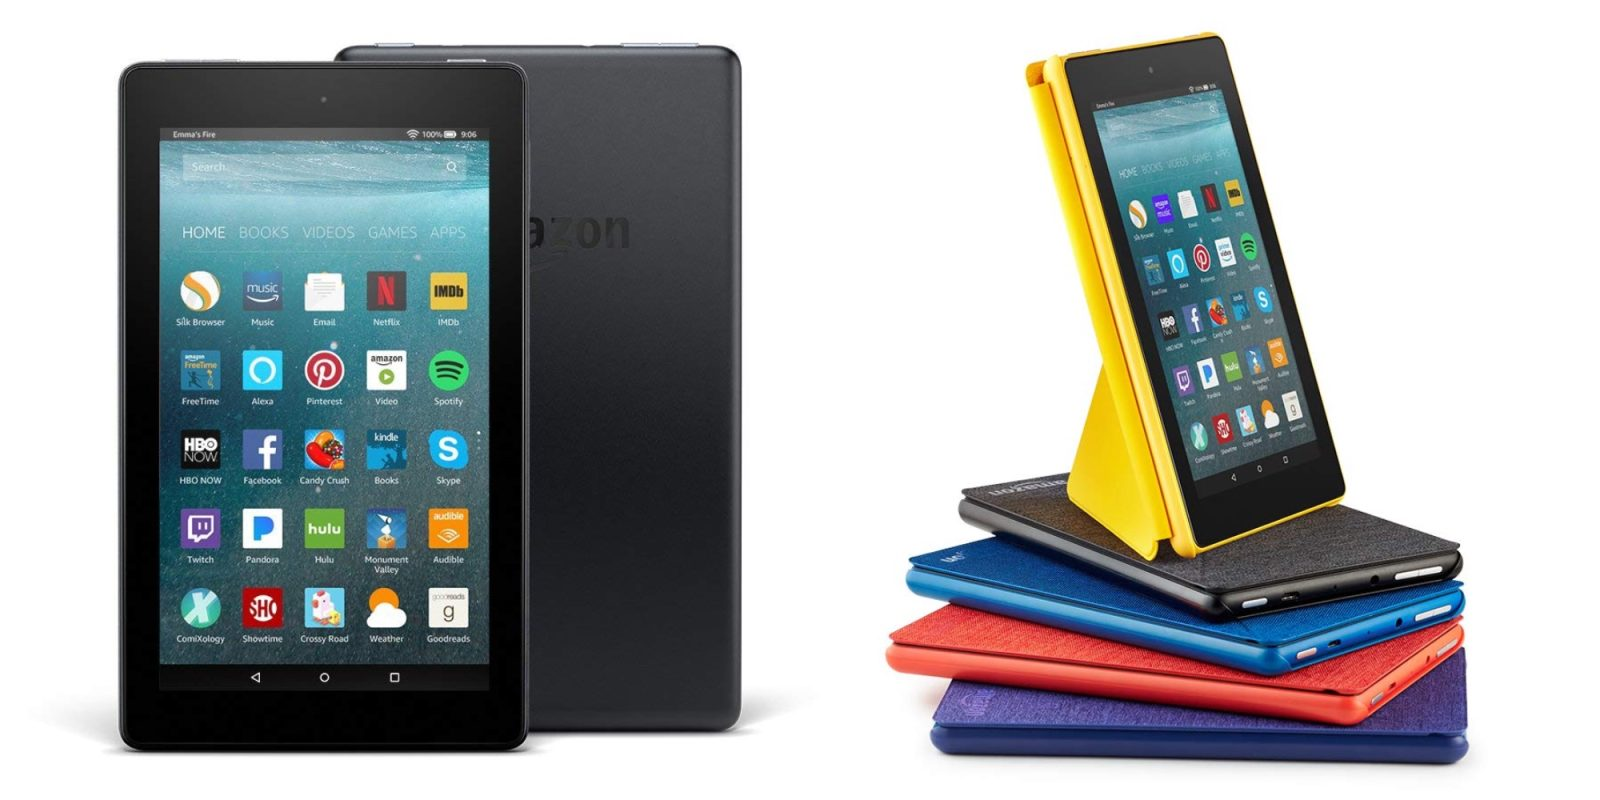 Amazon discounts previous gen. Fire 7 Tablet to $40 (20% off) ahead of new version's launch